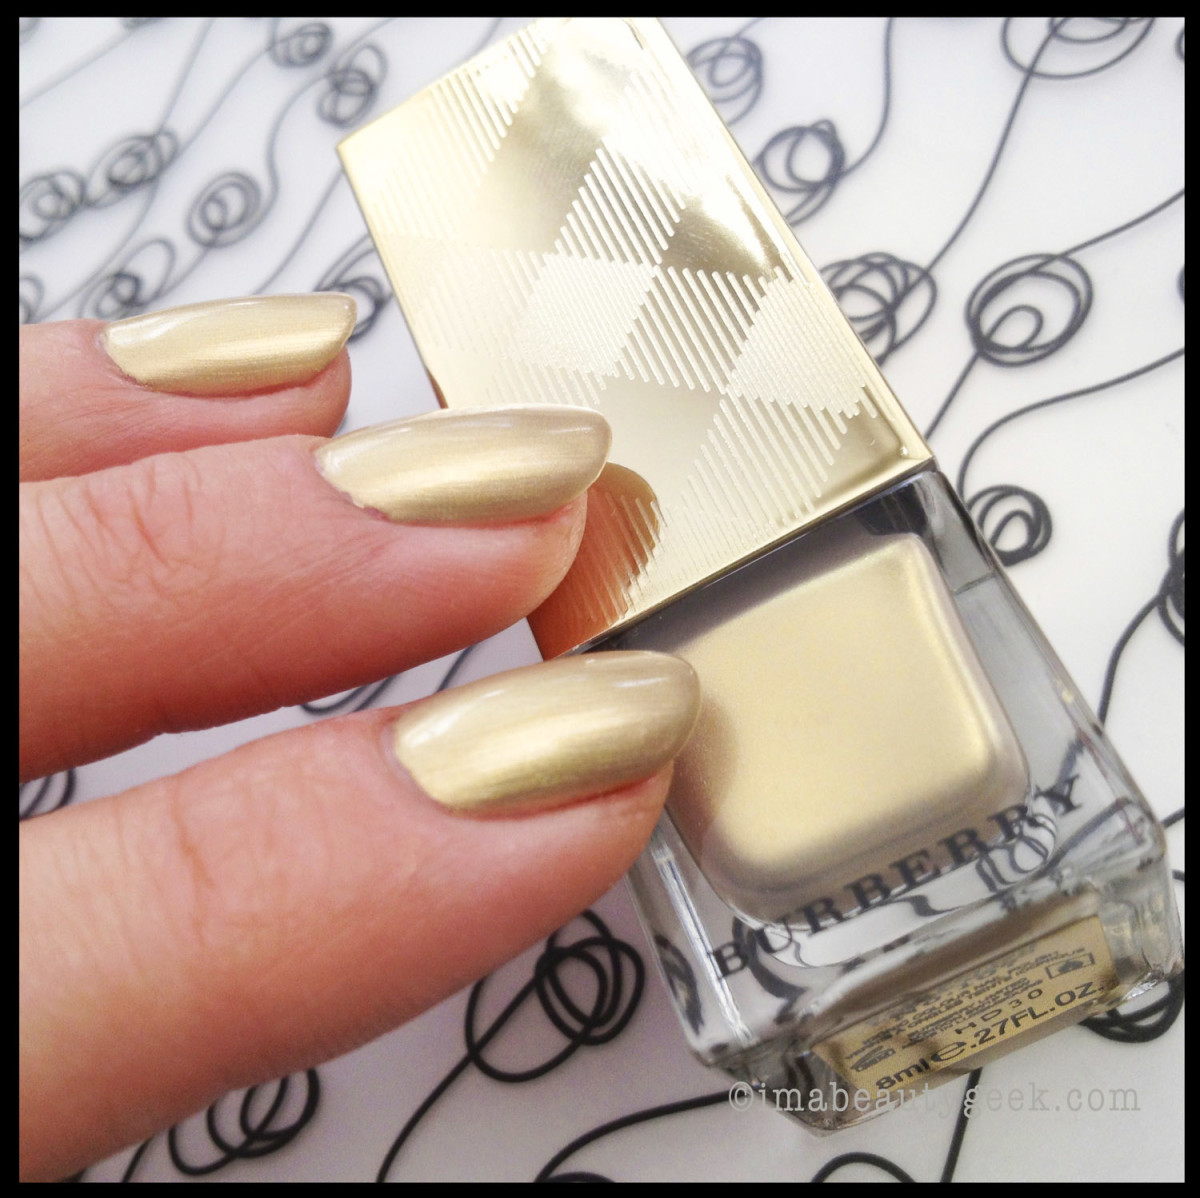 Burberry-Light-Gold-107 imprecise cuticles_grrr inflexible brush_cleanup via brush and acetone required